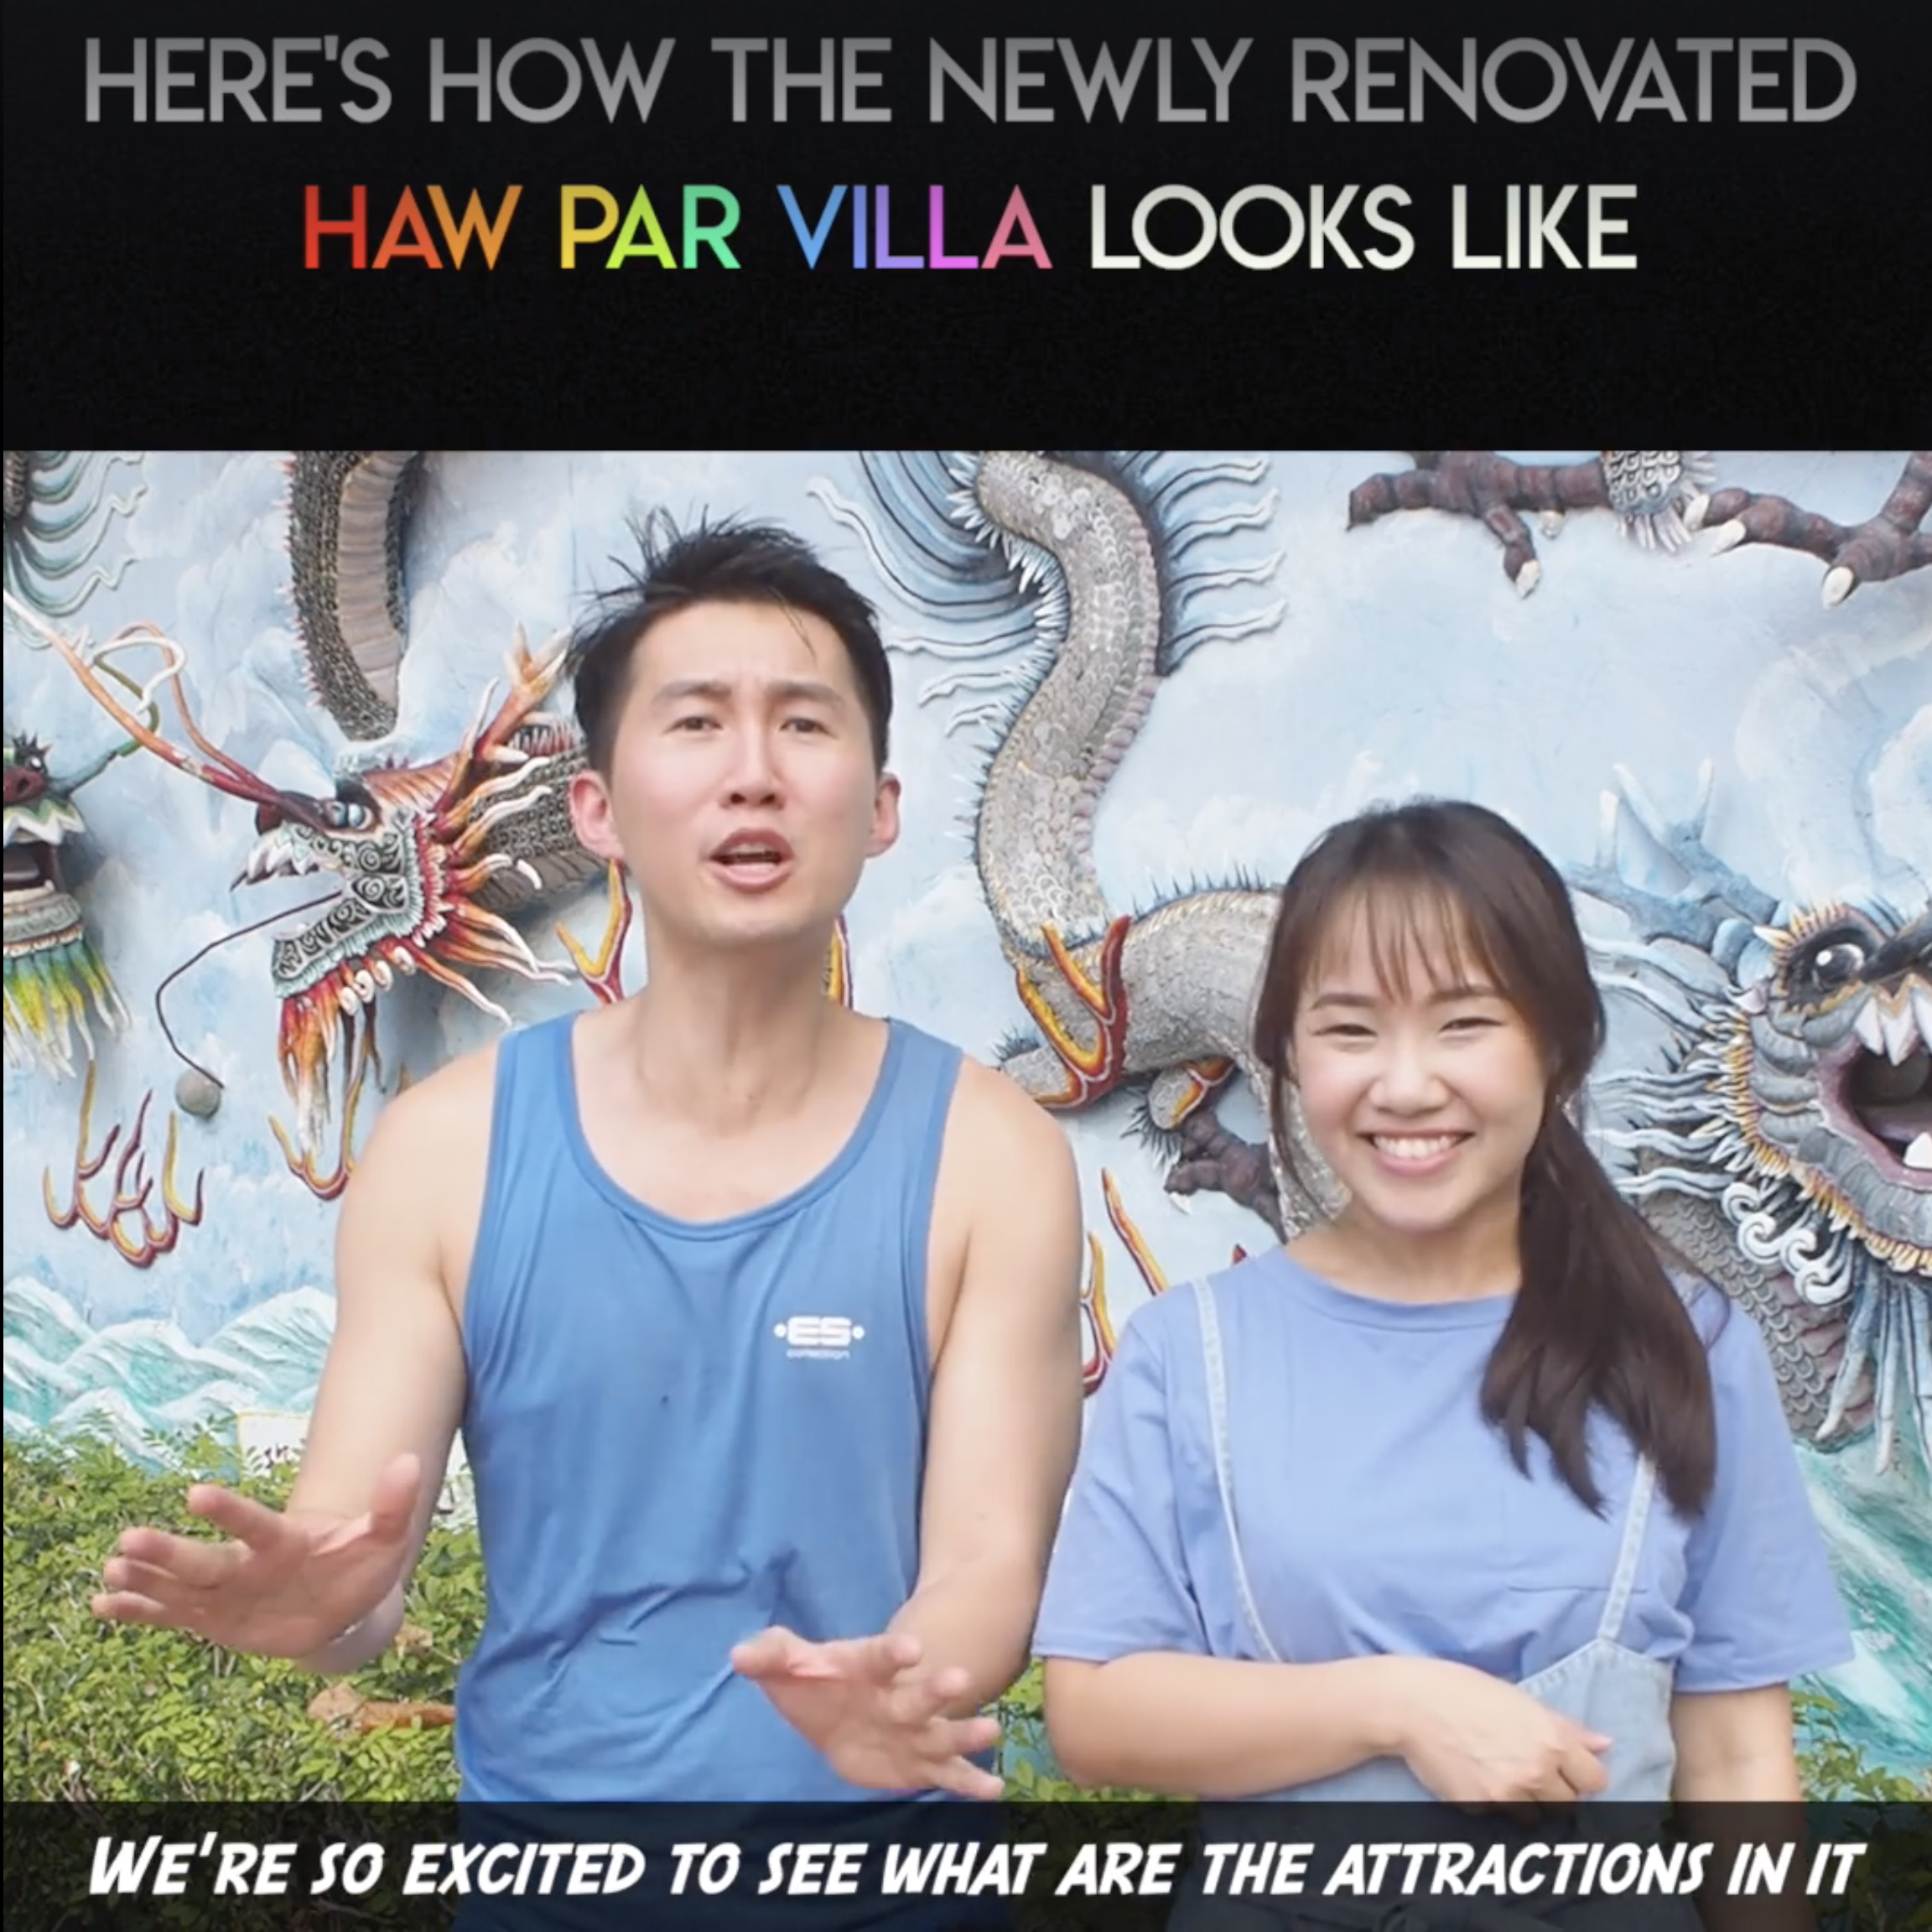 Revamped Haw Par Villa